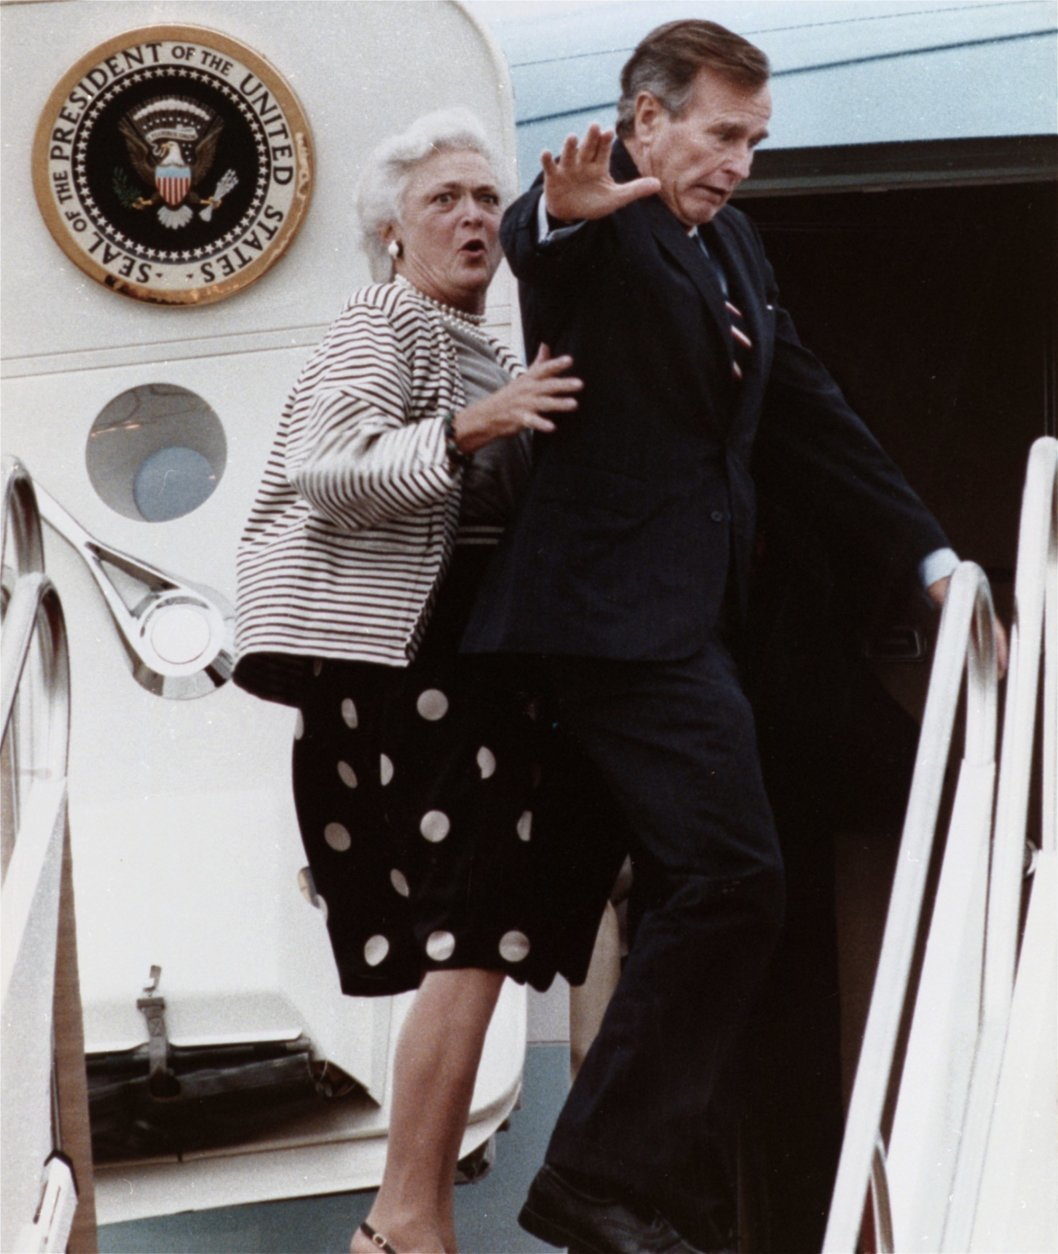 """FILE - In this Sept. 22, 1989, file photo, first lady Barbara Bush reacts after President George H.W. Bush accidentally stepped on her toe while boarding Air Force One at Andrews Air Force Base, Md., for a flight to New Jersey. Former first couple George and Barbara Bush's relationship is a true love story, described by granddaughter Jenna Bush Hager as """"remarkable."""" They met at a Christmas dance. She was 17. He was 18. Two years later they were married. Now 73 years later, with Barbara Bush declining further medical care for health problems, they are the longest-married couple in presidential history. (AP Photo/Charles Tasnadi, File)"""